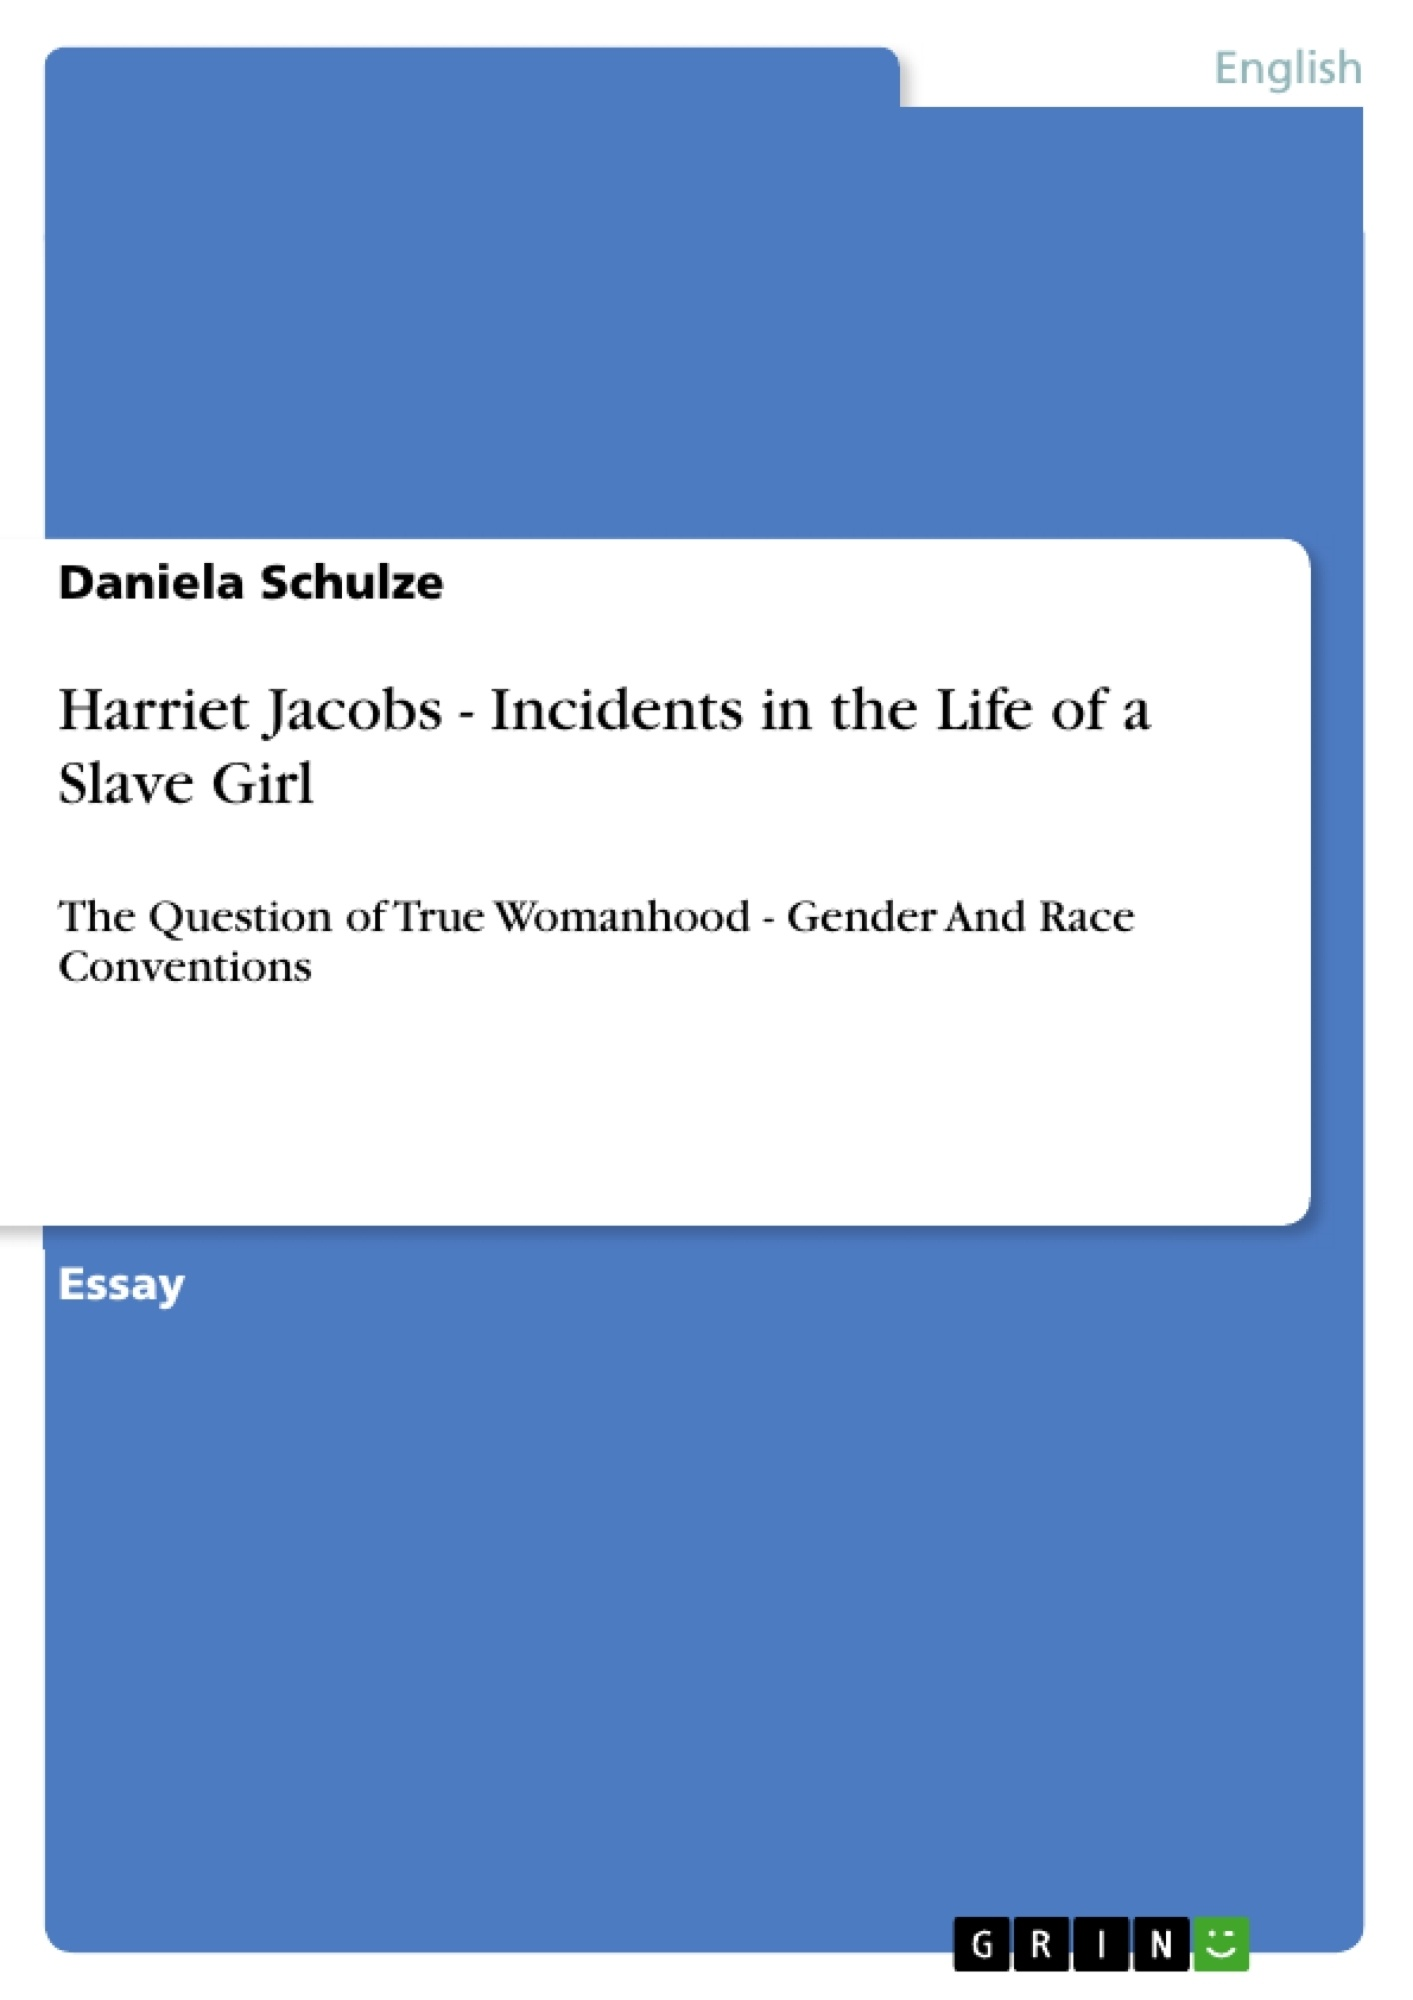 harriet jacobs incidents in the life of a slave girl publish  earn money and win an iphone x